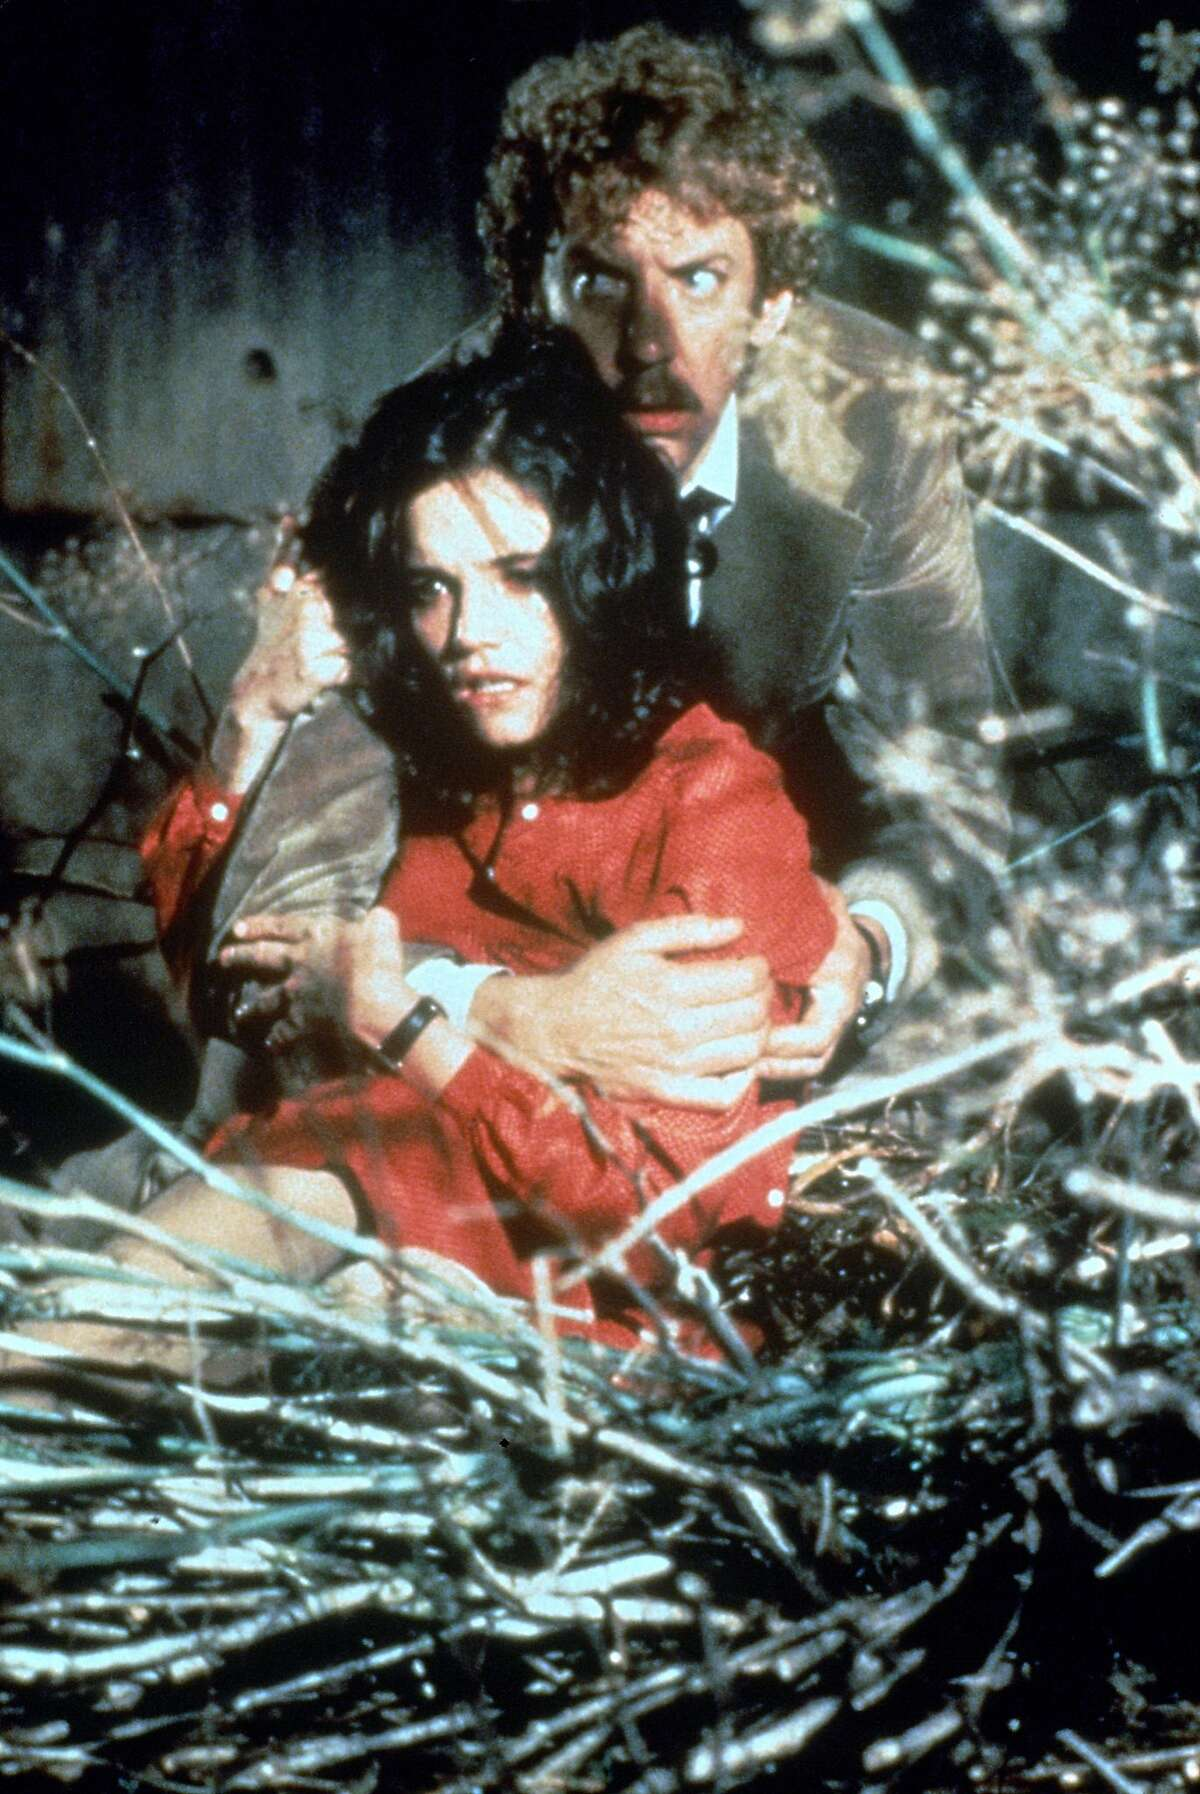 Invasion of the Body Snatchers (1978) -- Brooke Adams, Donald Sutherland. 1997 MGM Home Entertainment